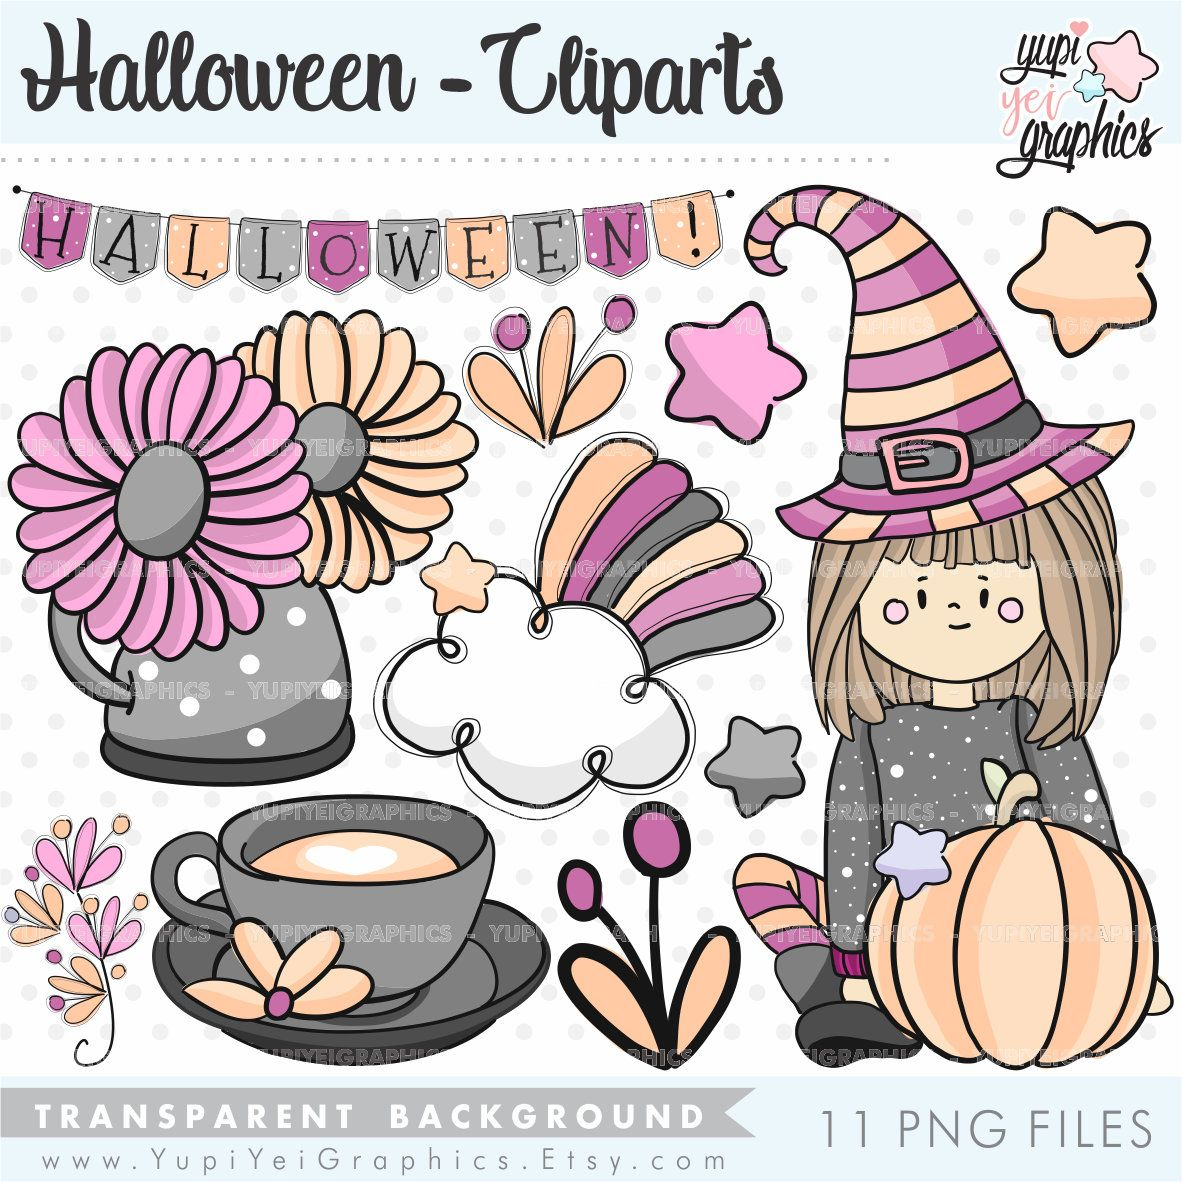 Halloween Clipart Halloween Graphics Witch Clipart | Etsy ...